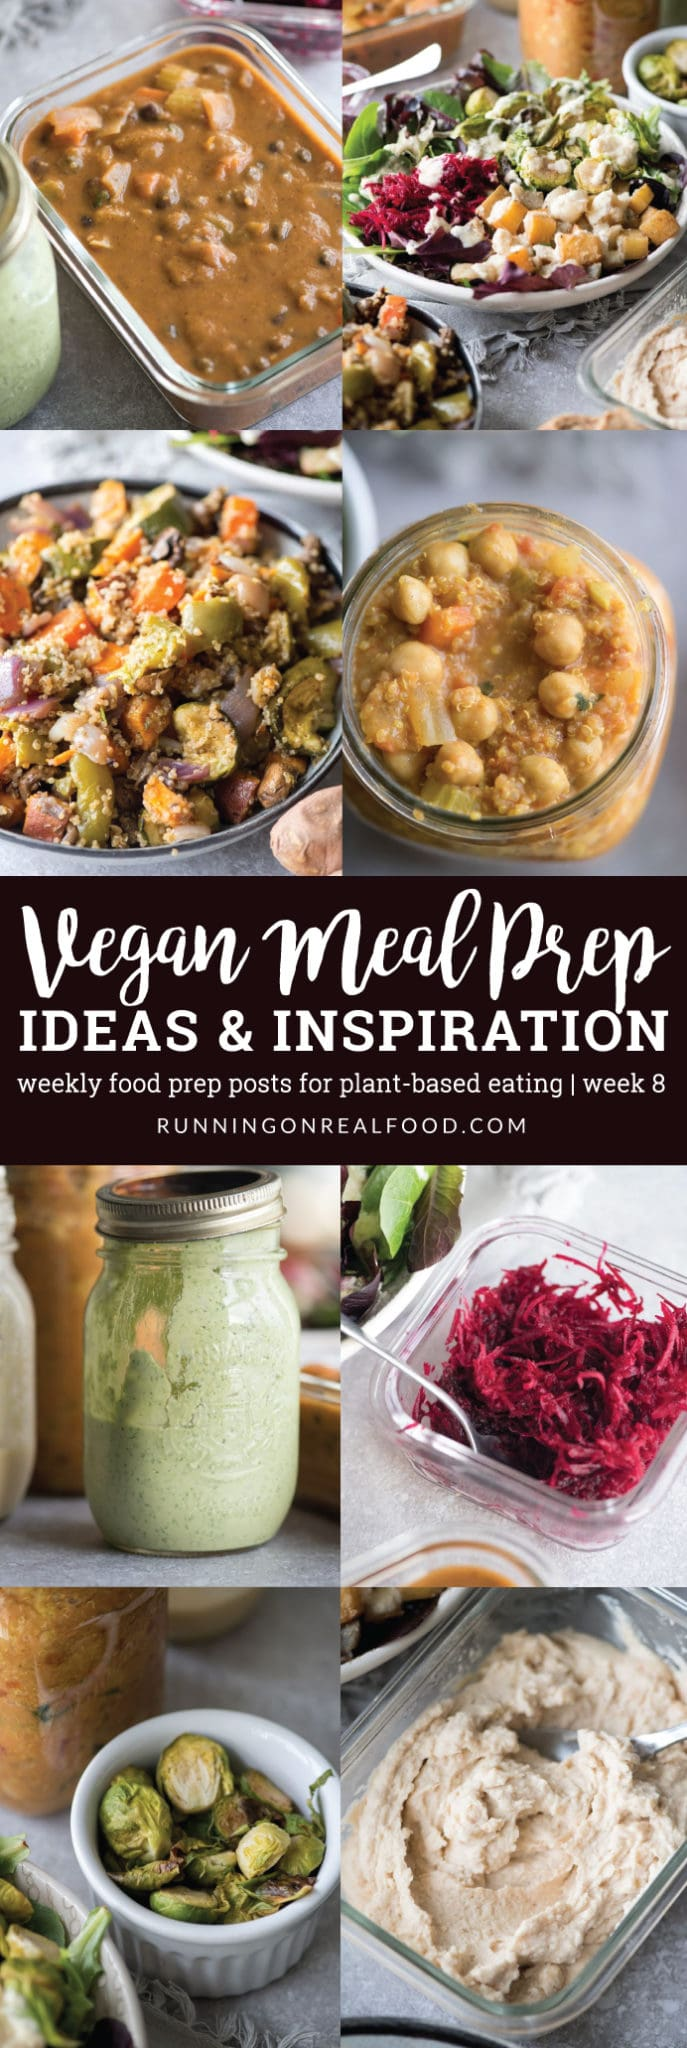 This weeks healthy, vegan meal prep features black bean soup, roasted vegetable quinoa salad, roasted root vegetables, tahini herb dressing, red lentil hummus and more. New posts on plant-based food prep weekly!